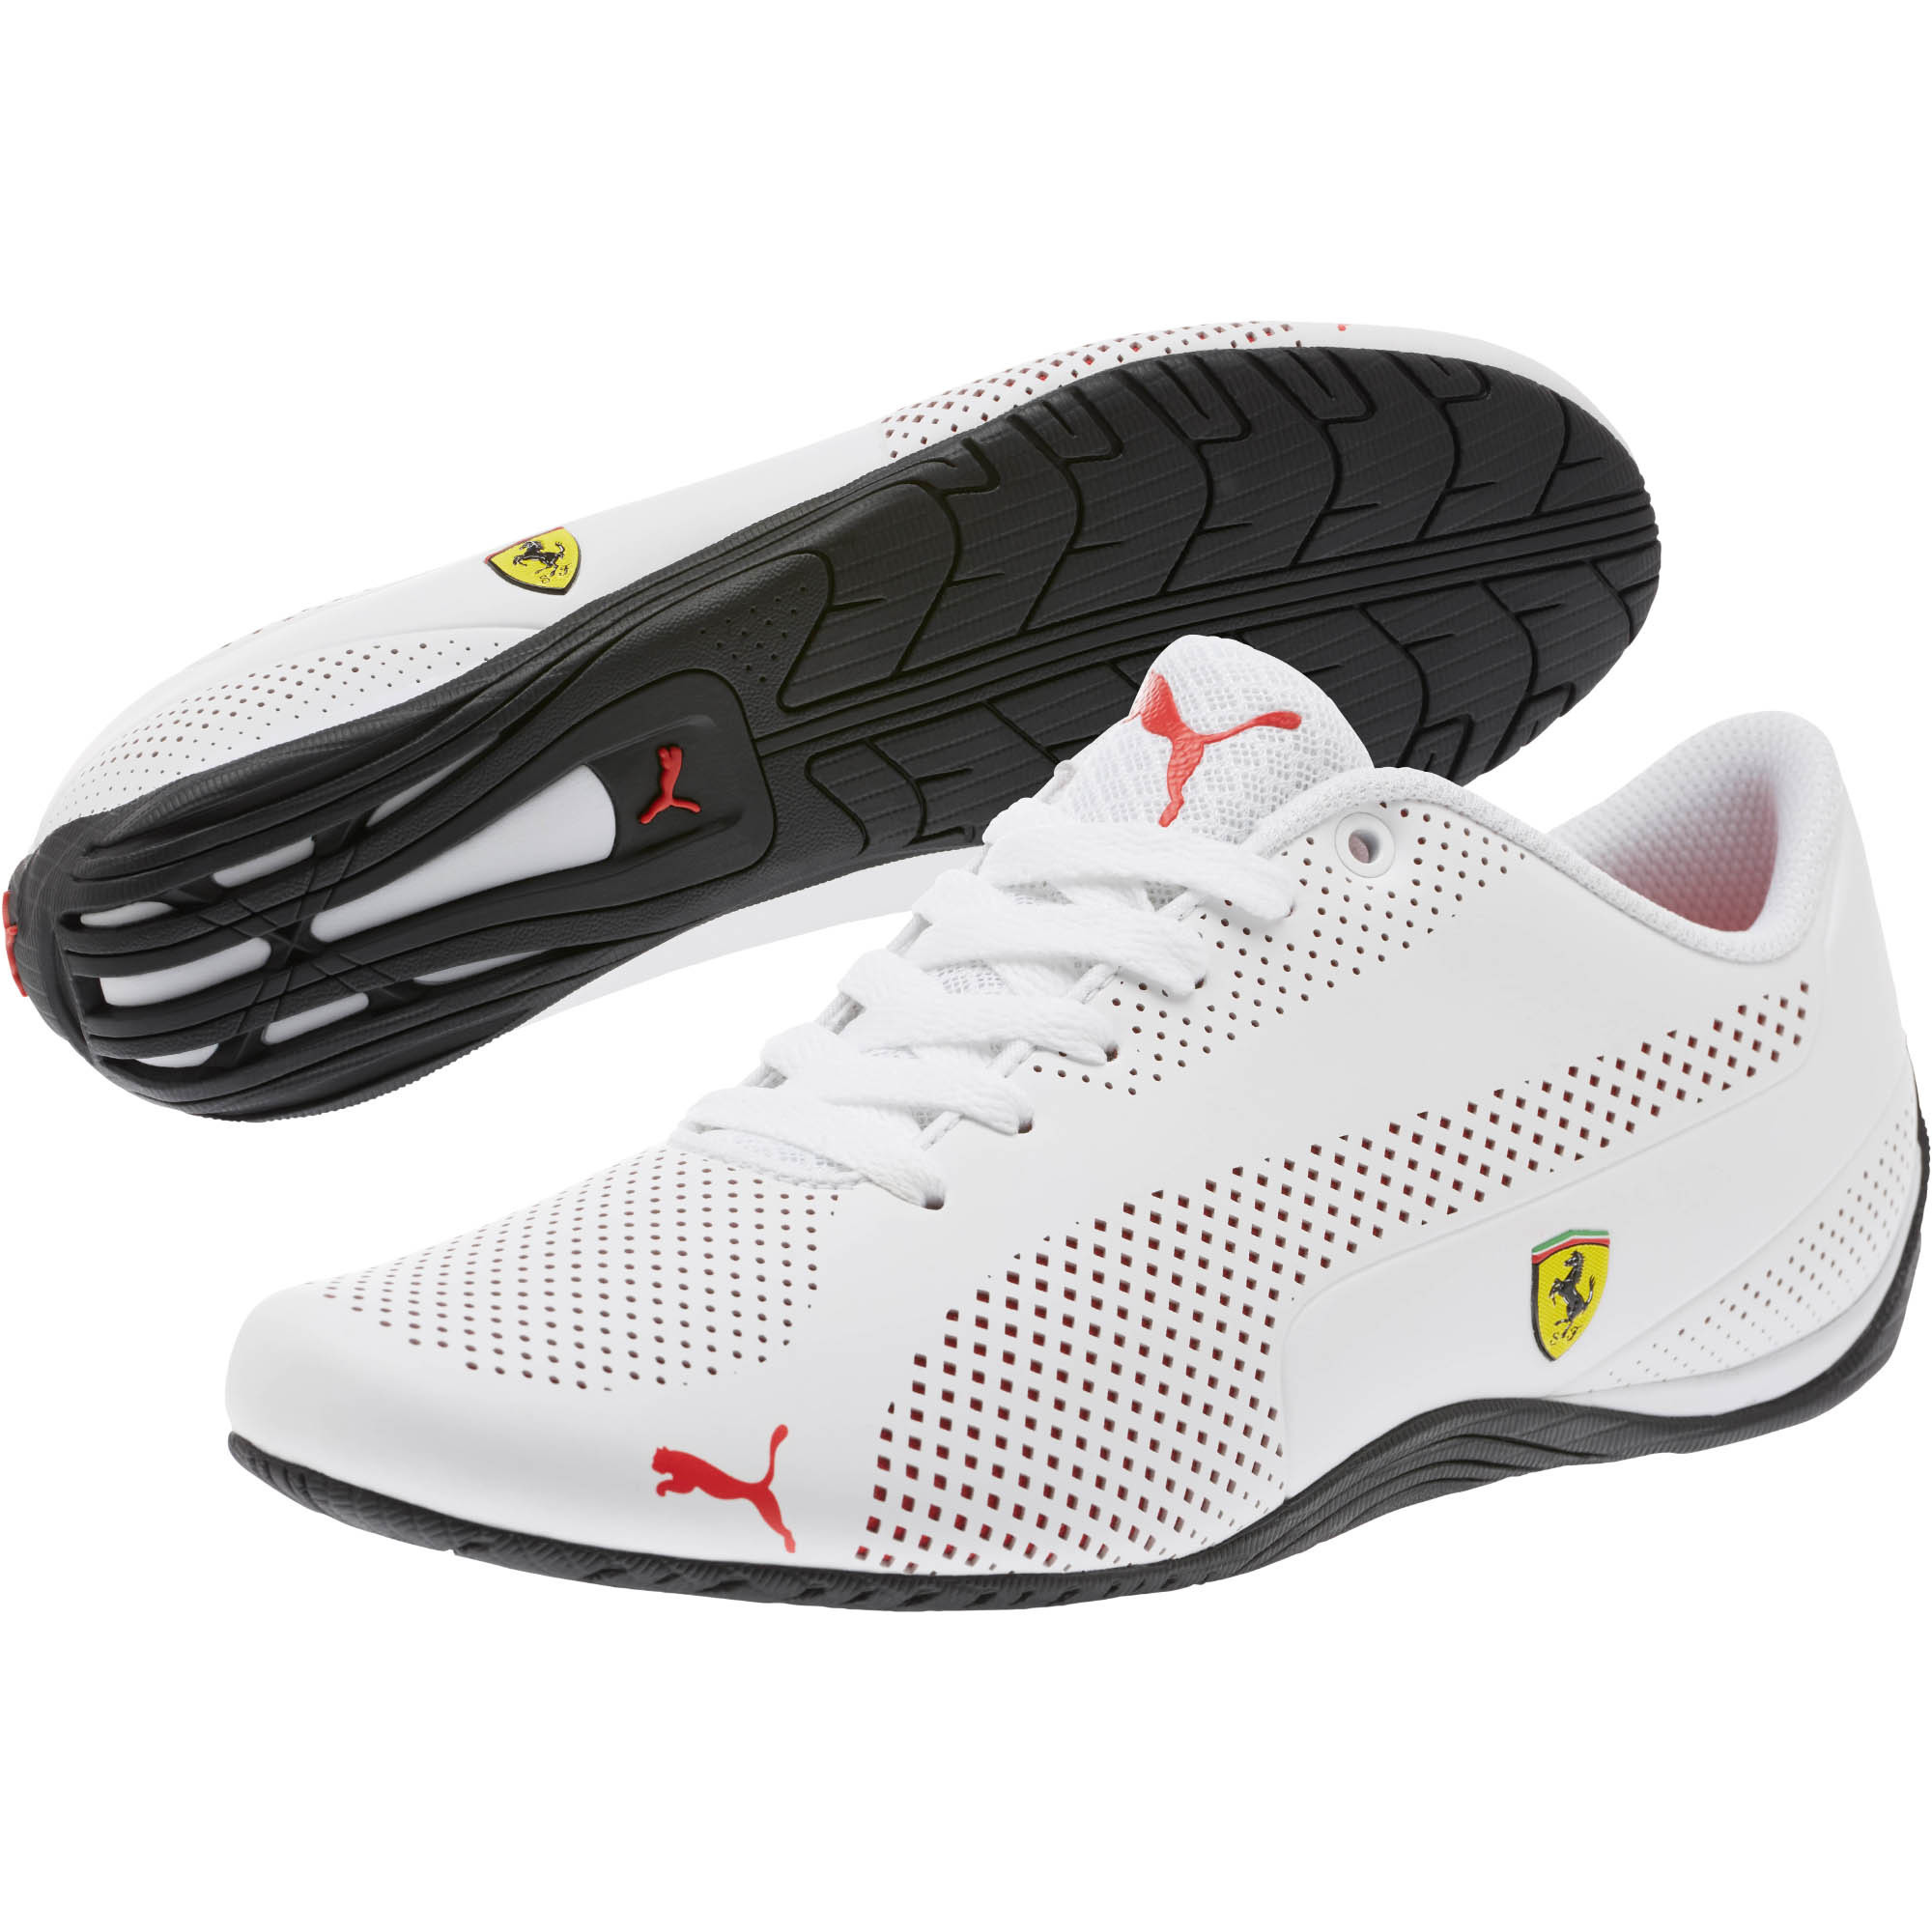 Scuderia Ferrari Drift Cat 5 Ultra Shoes